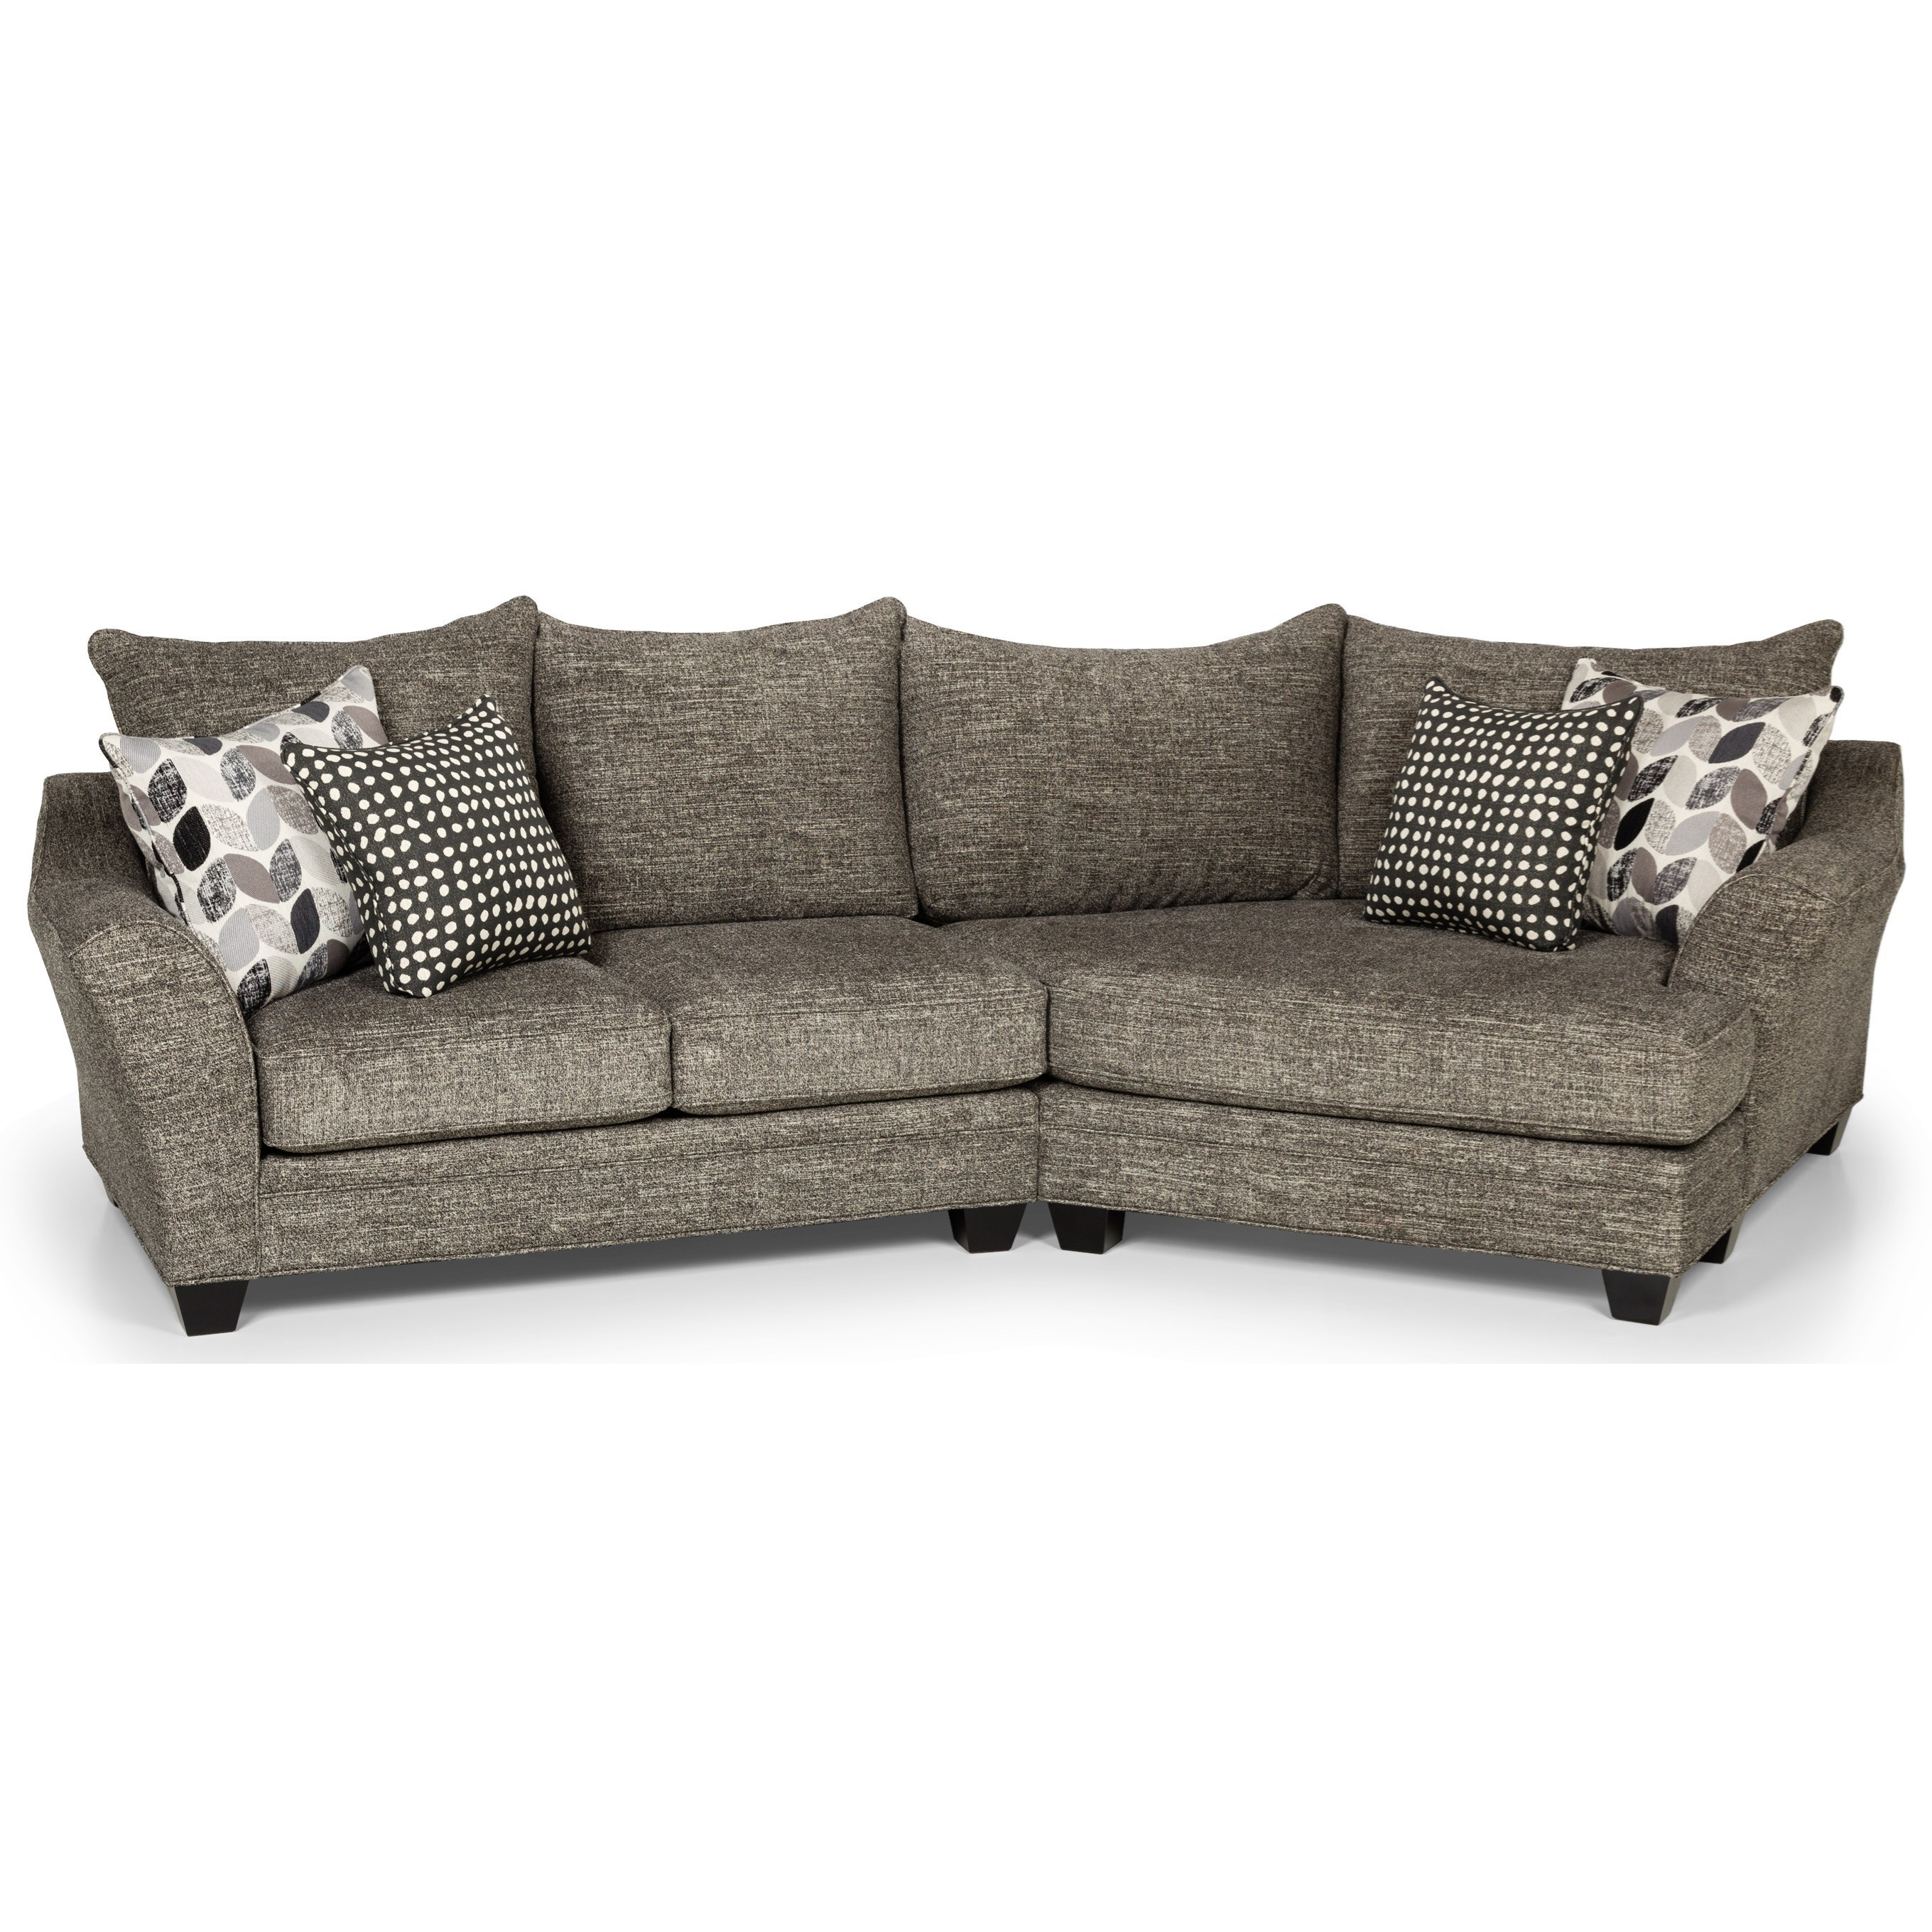 Stanton 372 Casual Sectional Sofa with Cuddler  sc 1 st  Rifeu0027s Home Furniture & Stanton 372 Casual Sectional Sofa with Cuddler - Rifeu0027s Home ... islam-shia.org